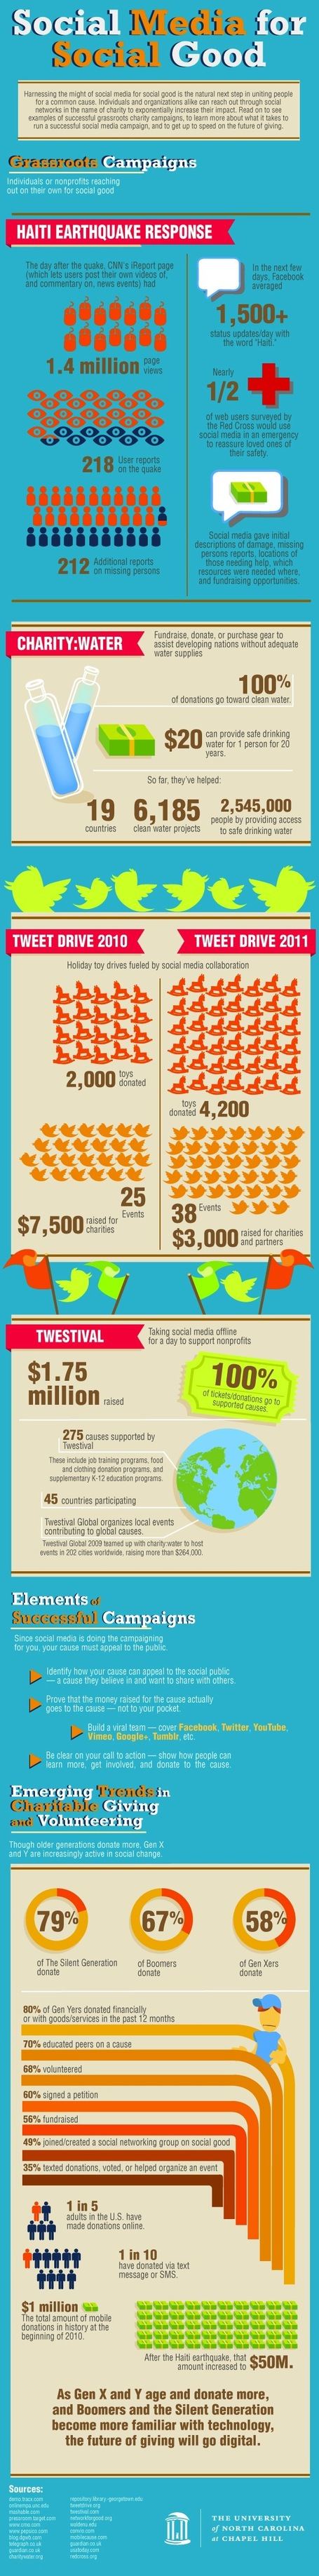 Social Media for Social Good [INFOGRAPHIC] | De Informatieprofessional | Scoop.it